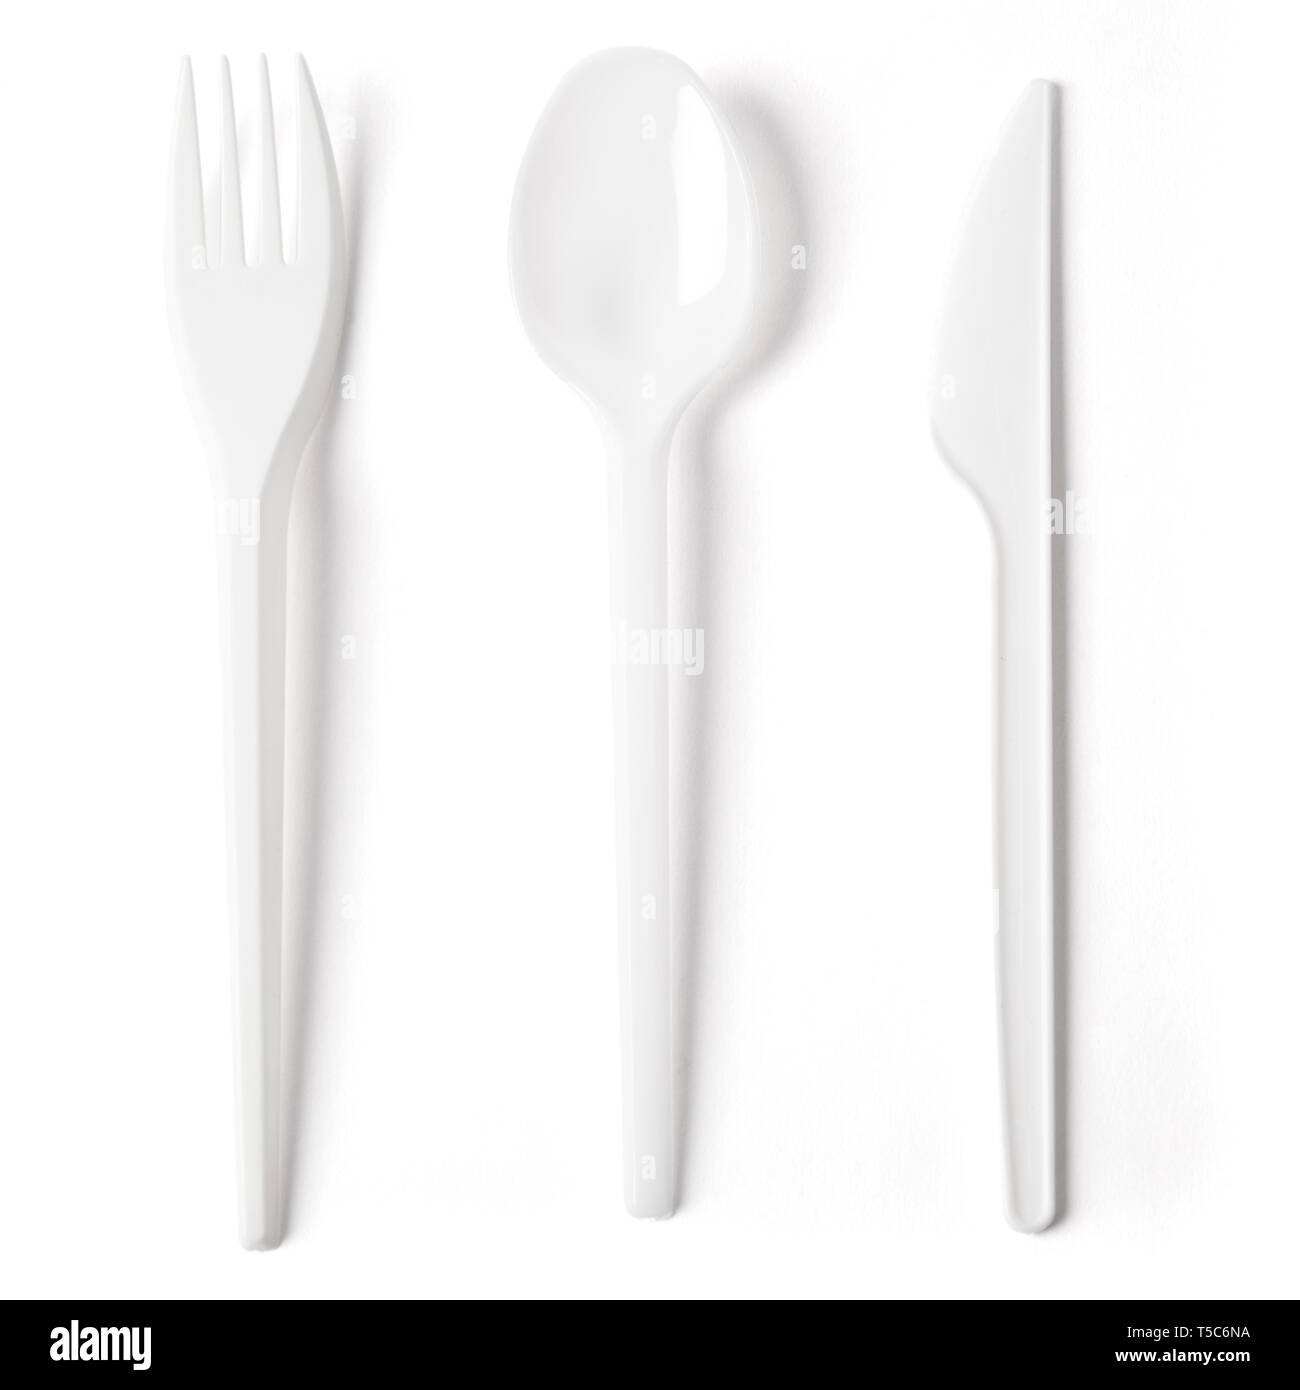 Disposable plastic cutlery fork, spoon and knife with working pats isolated on white. - Stock Image